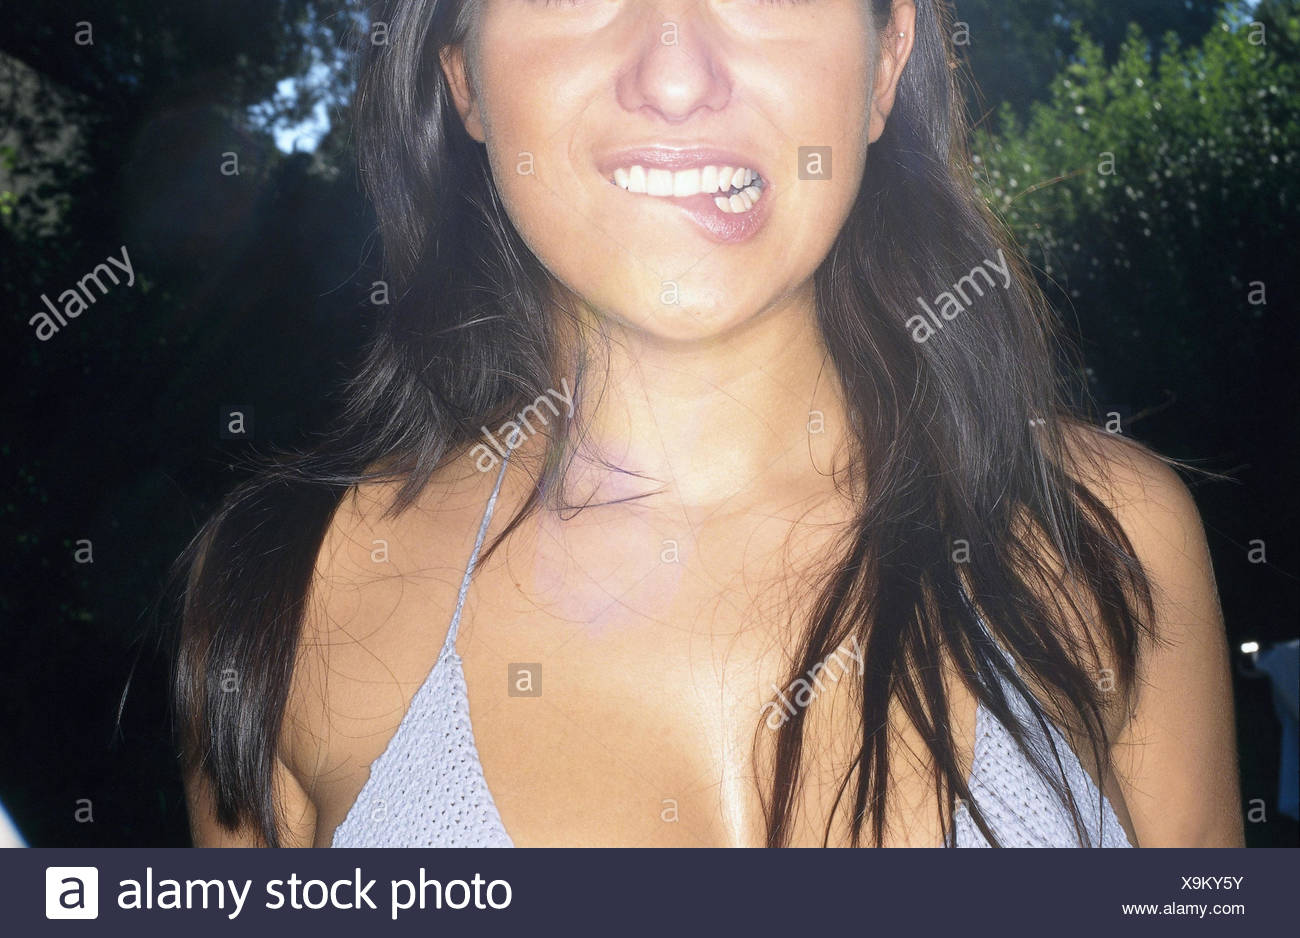 Woman, young, bikini, facial play, insecurity, doubts, detail, summer, outside, long-haired, dark-haired, crochet top, expression, doubt, scepticism, embarrassment, surprise, uncertainly, hesitate, indecision, undecided, very close - Stock Image